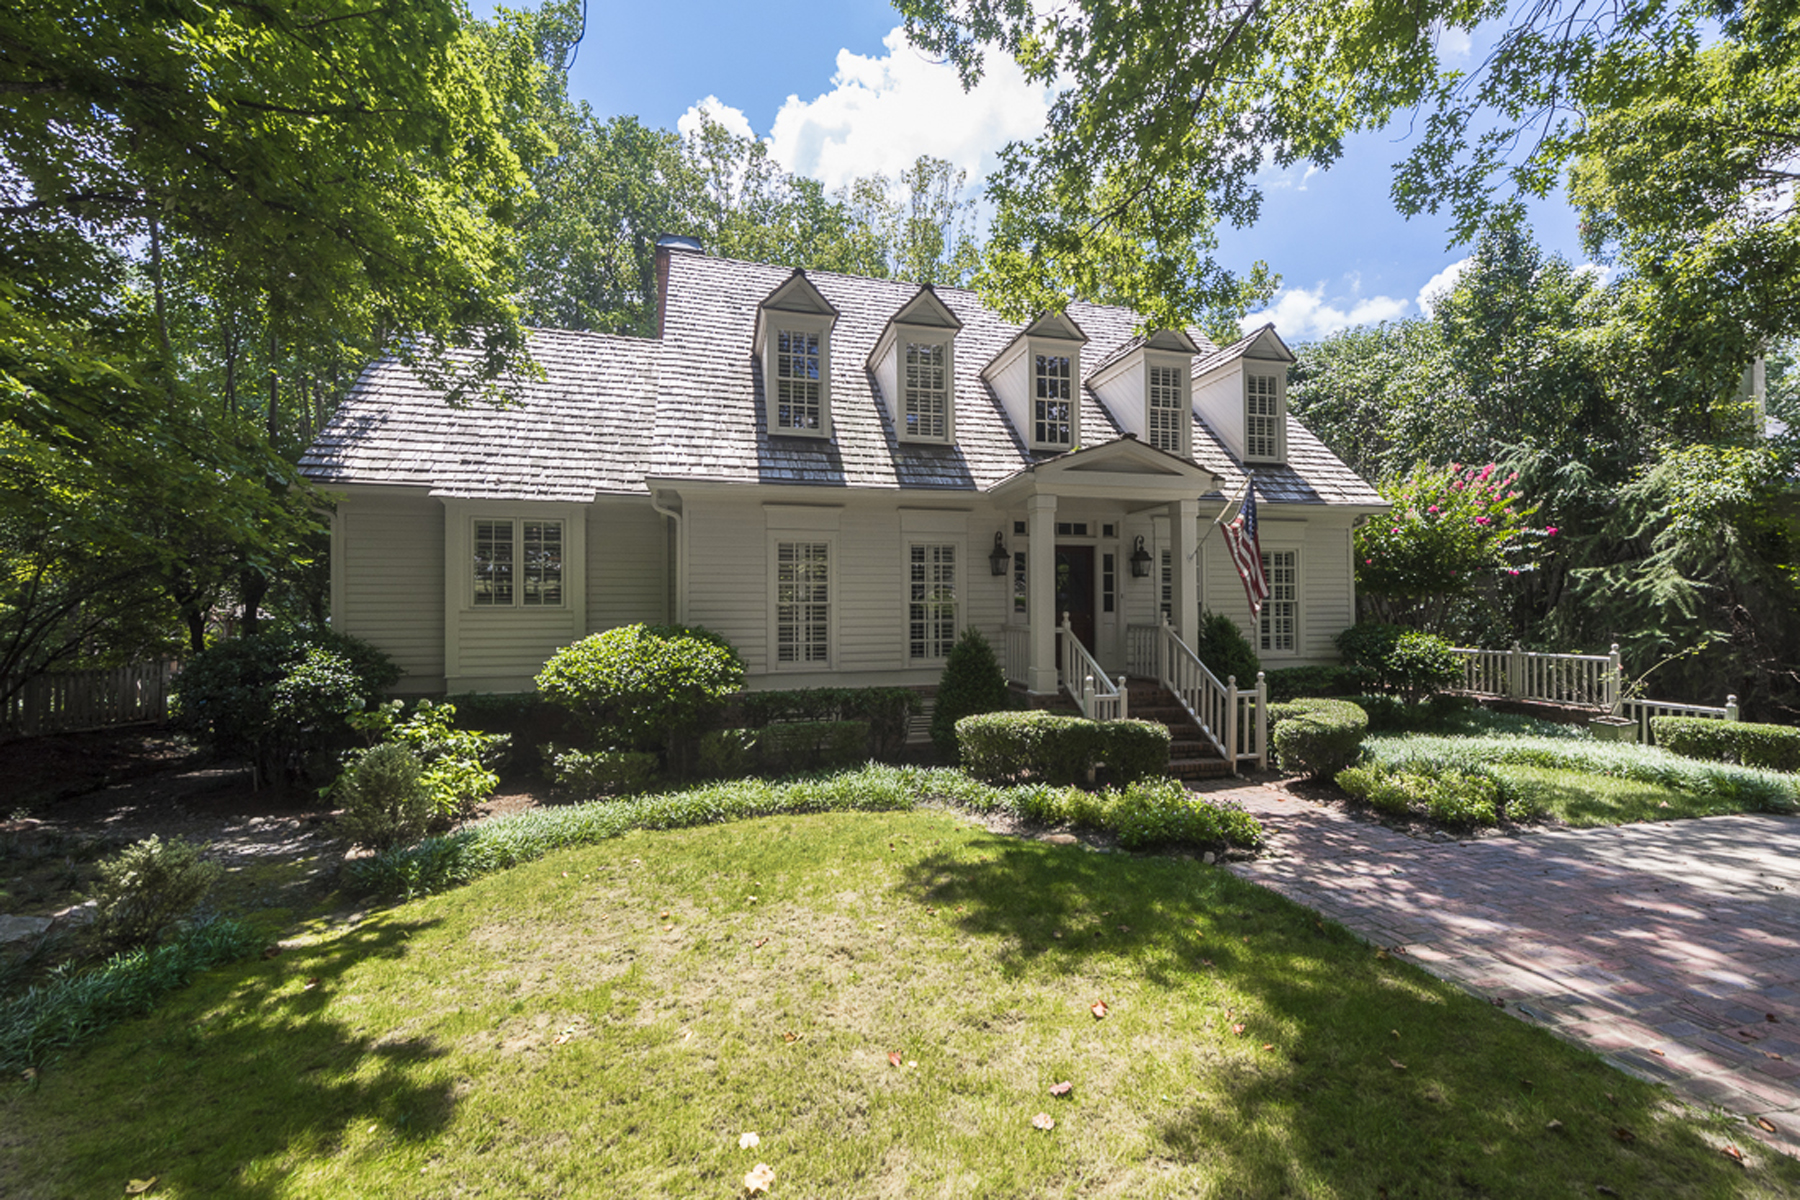 단독 가정 주택 용 매매 에 Beautiful Cape Cod Home In Castlewood 2783 Dover Road NW Atlanta, 조지아 30327 미국